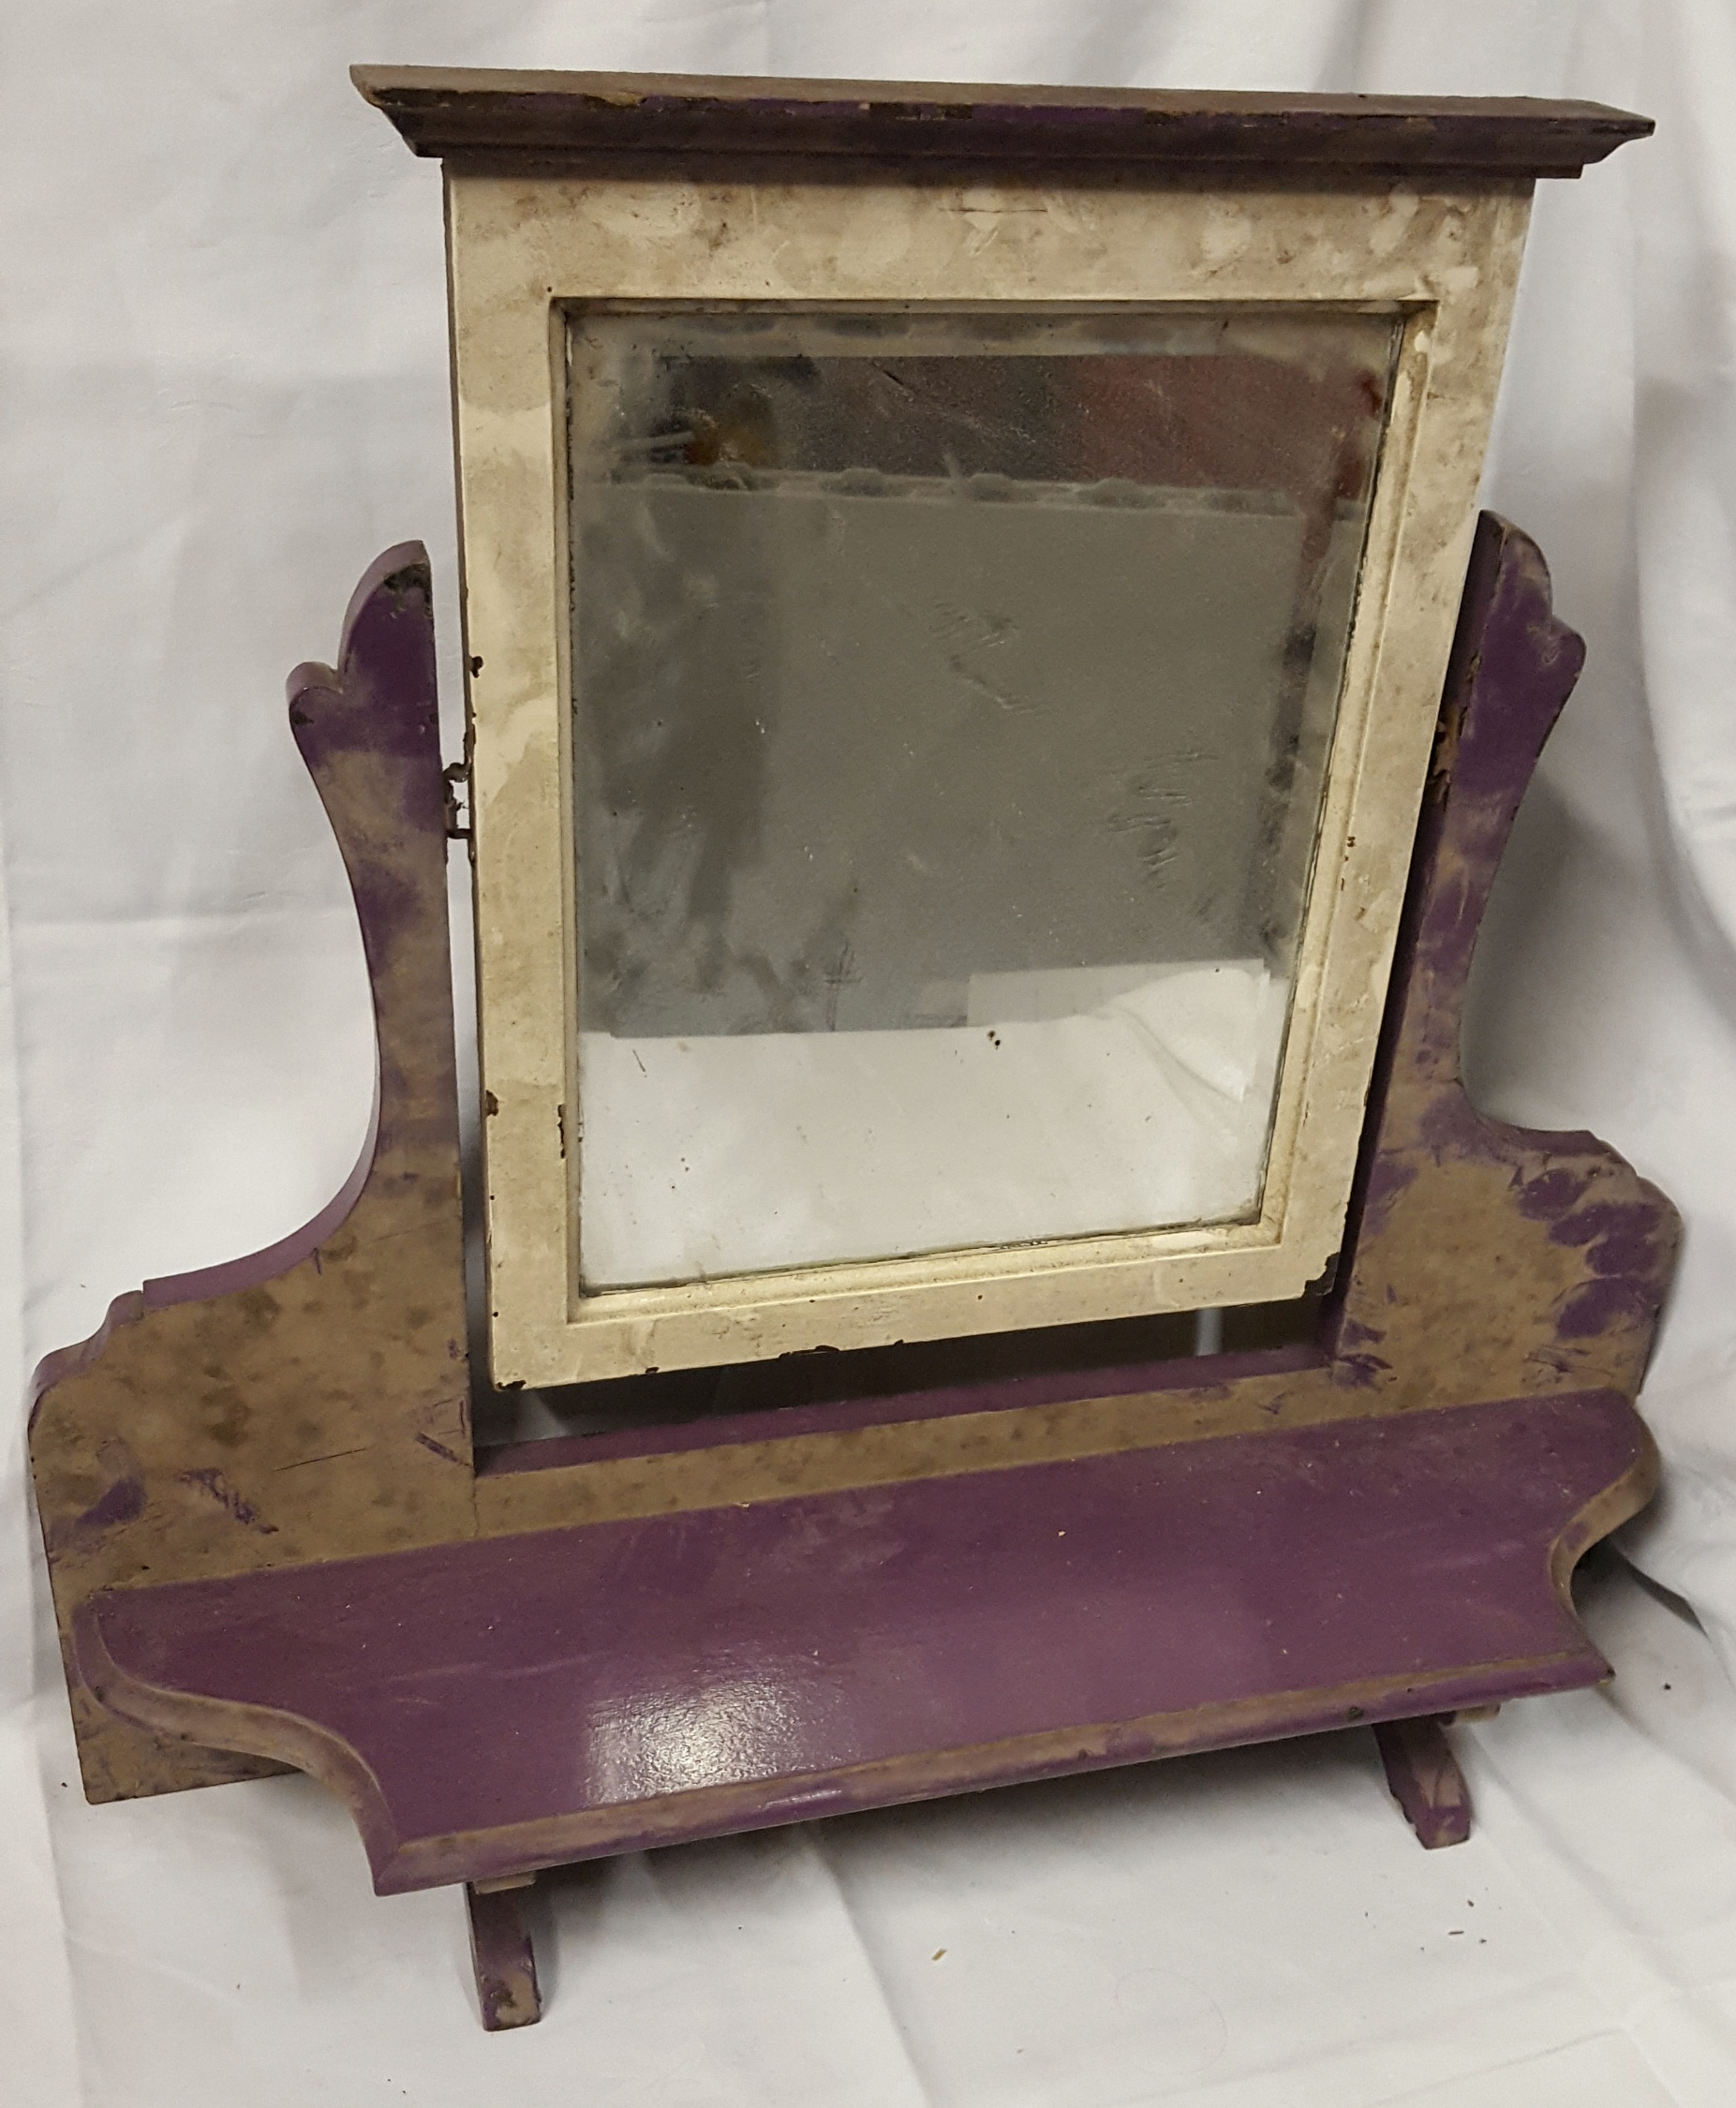 Lot 71 - Antiques Vintage Wash Mirror Victorian / Edwardian & 3 Retro Suitcases Shabby Chic NO RESERVE